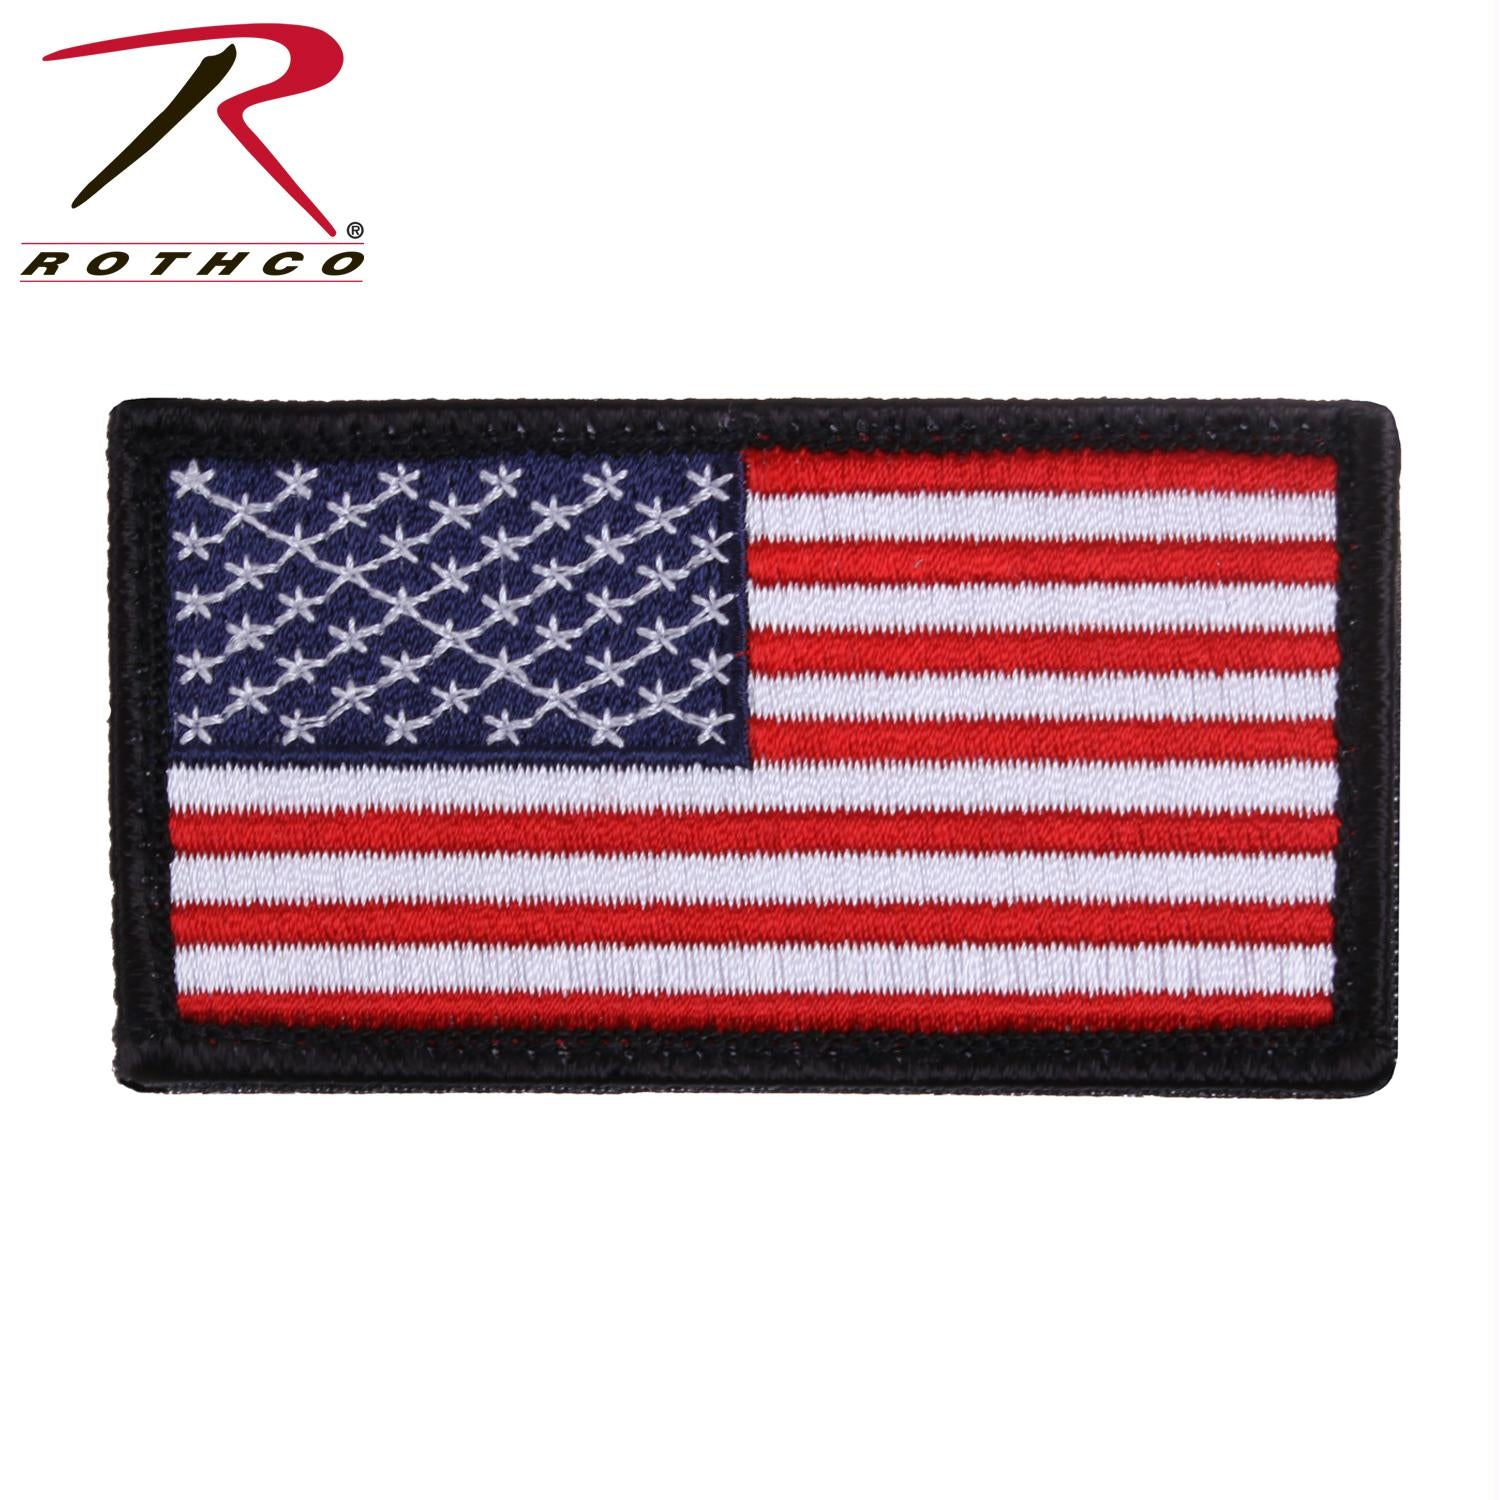 Rothco American Flag Patch - Red White Blue with Black Border / Normal / Bulk Packaging